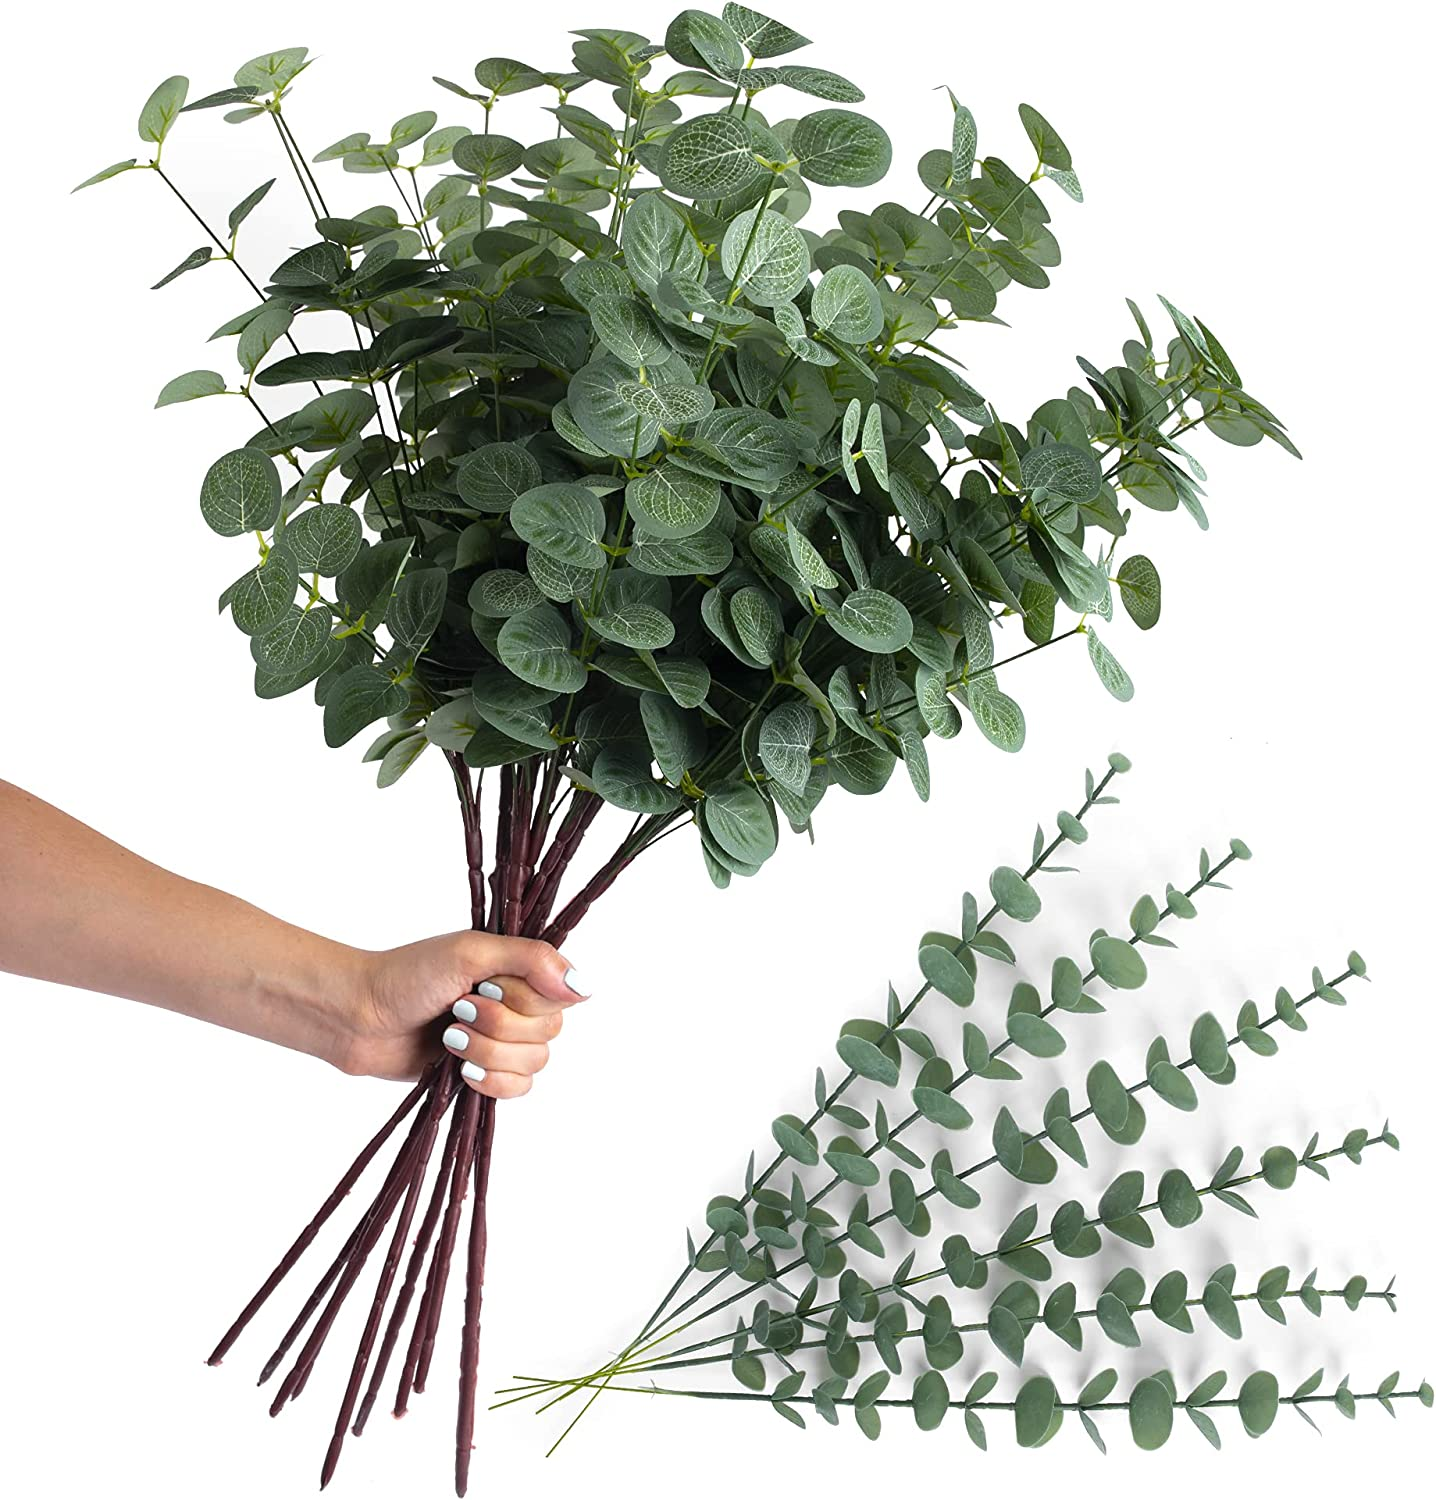 12 Artificial Eucalyptus Stems with Fake Leaves – Decorative Arrangements Set Jumbo and Normal Size Flexible Stem Faux Greenery Branches Bouquets Silver Dollar Leaf Wedding Centerpieces Vases Decor